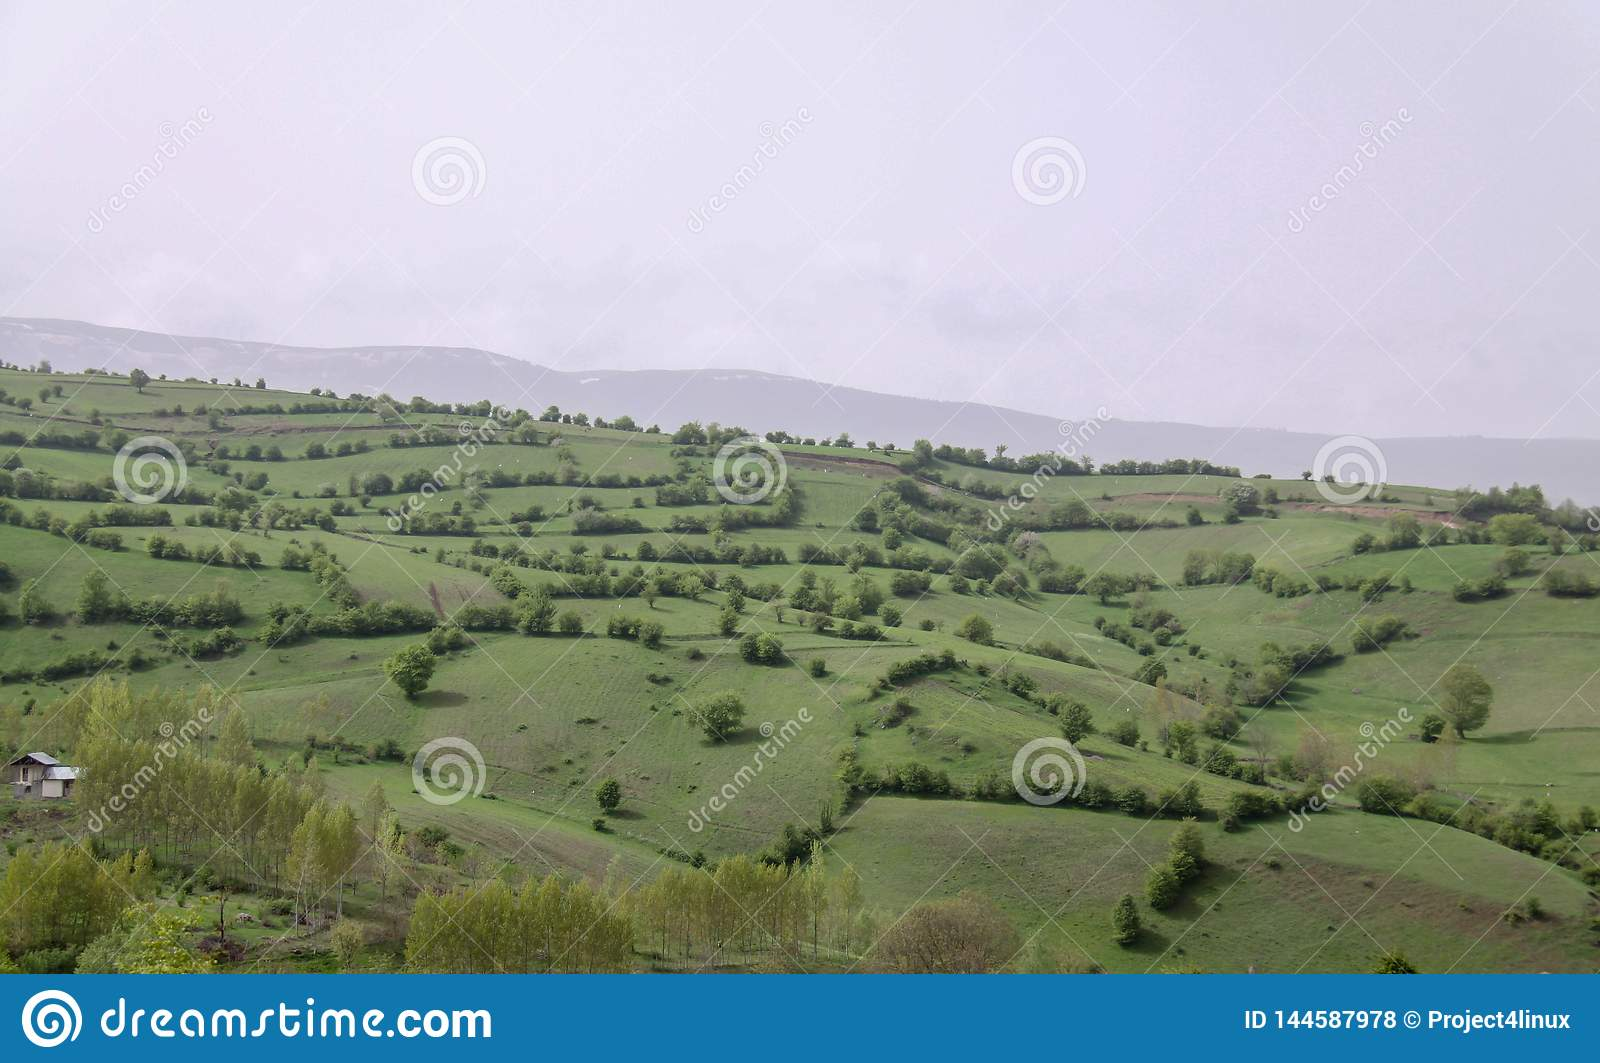 Unique plains landscape with trees in north of Iran, Gilan